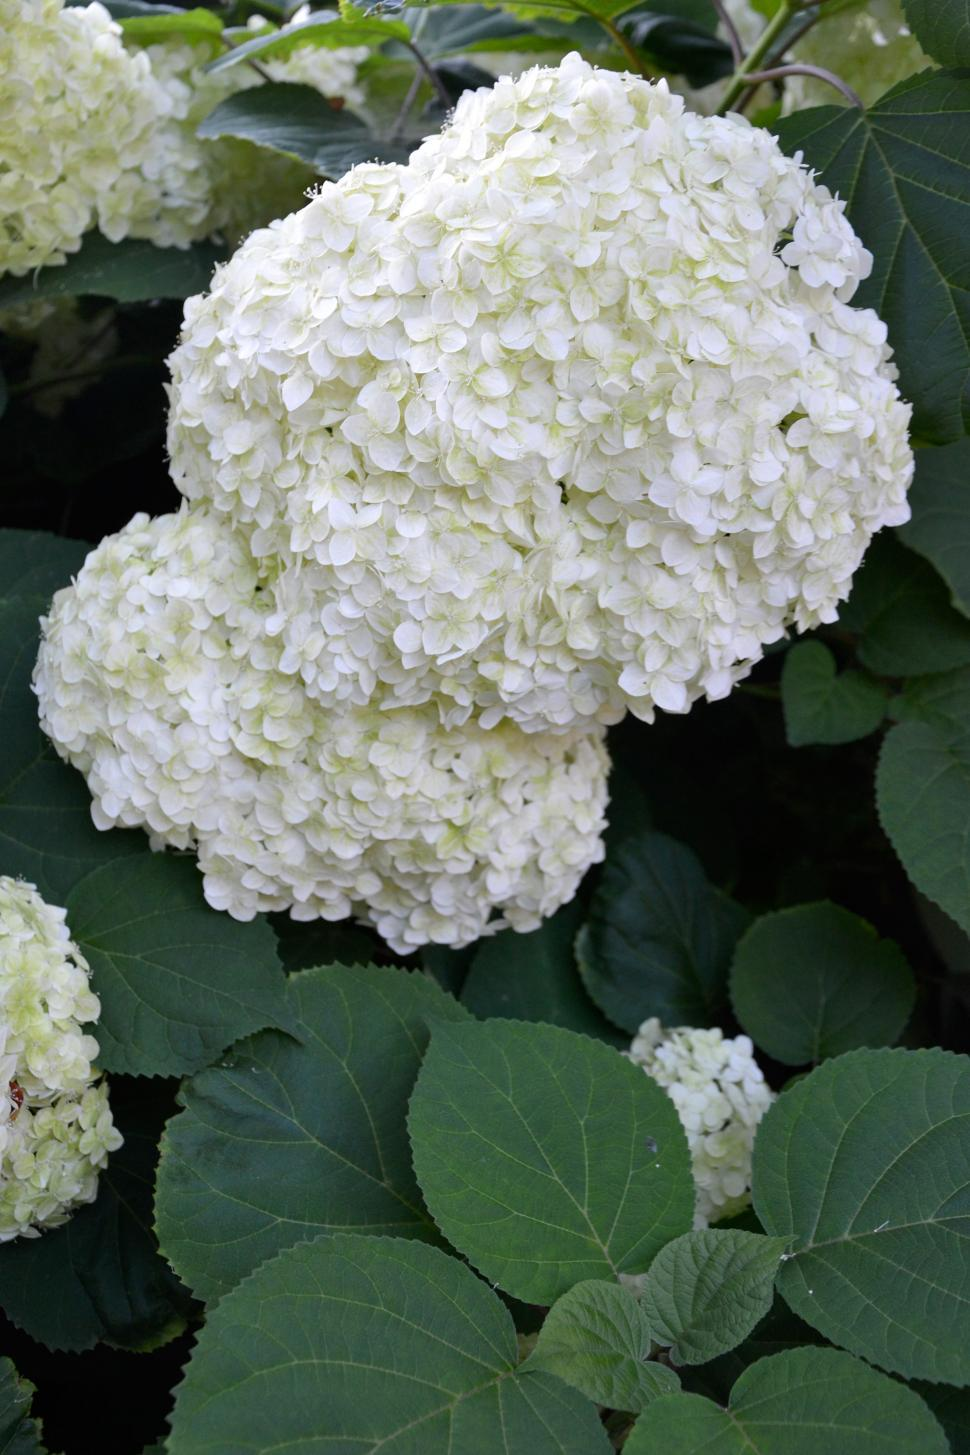 Download Free Stock Photo of Inflorescence of smooth hydrangea